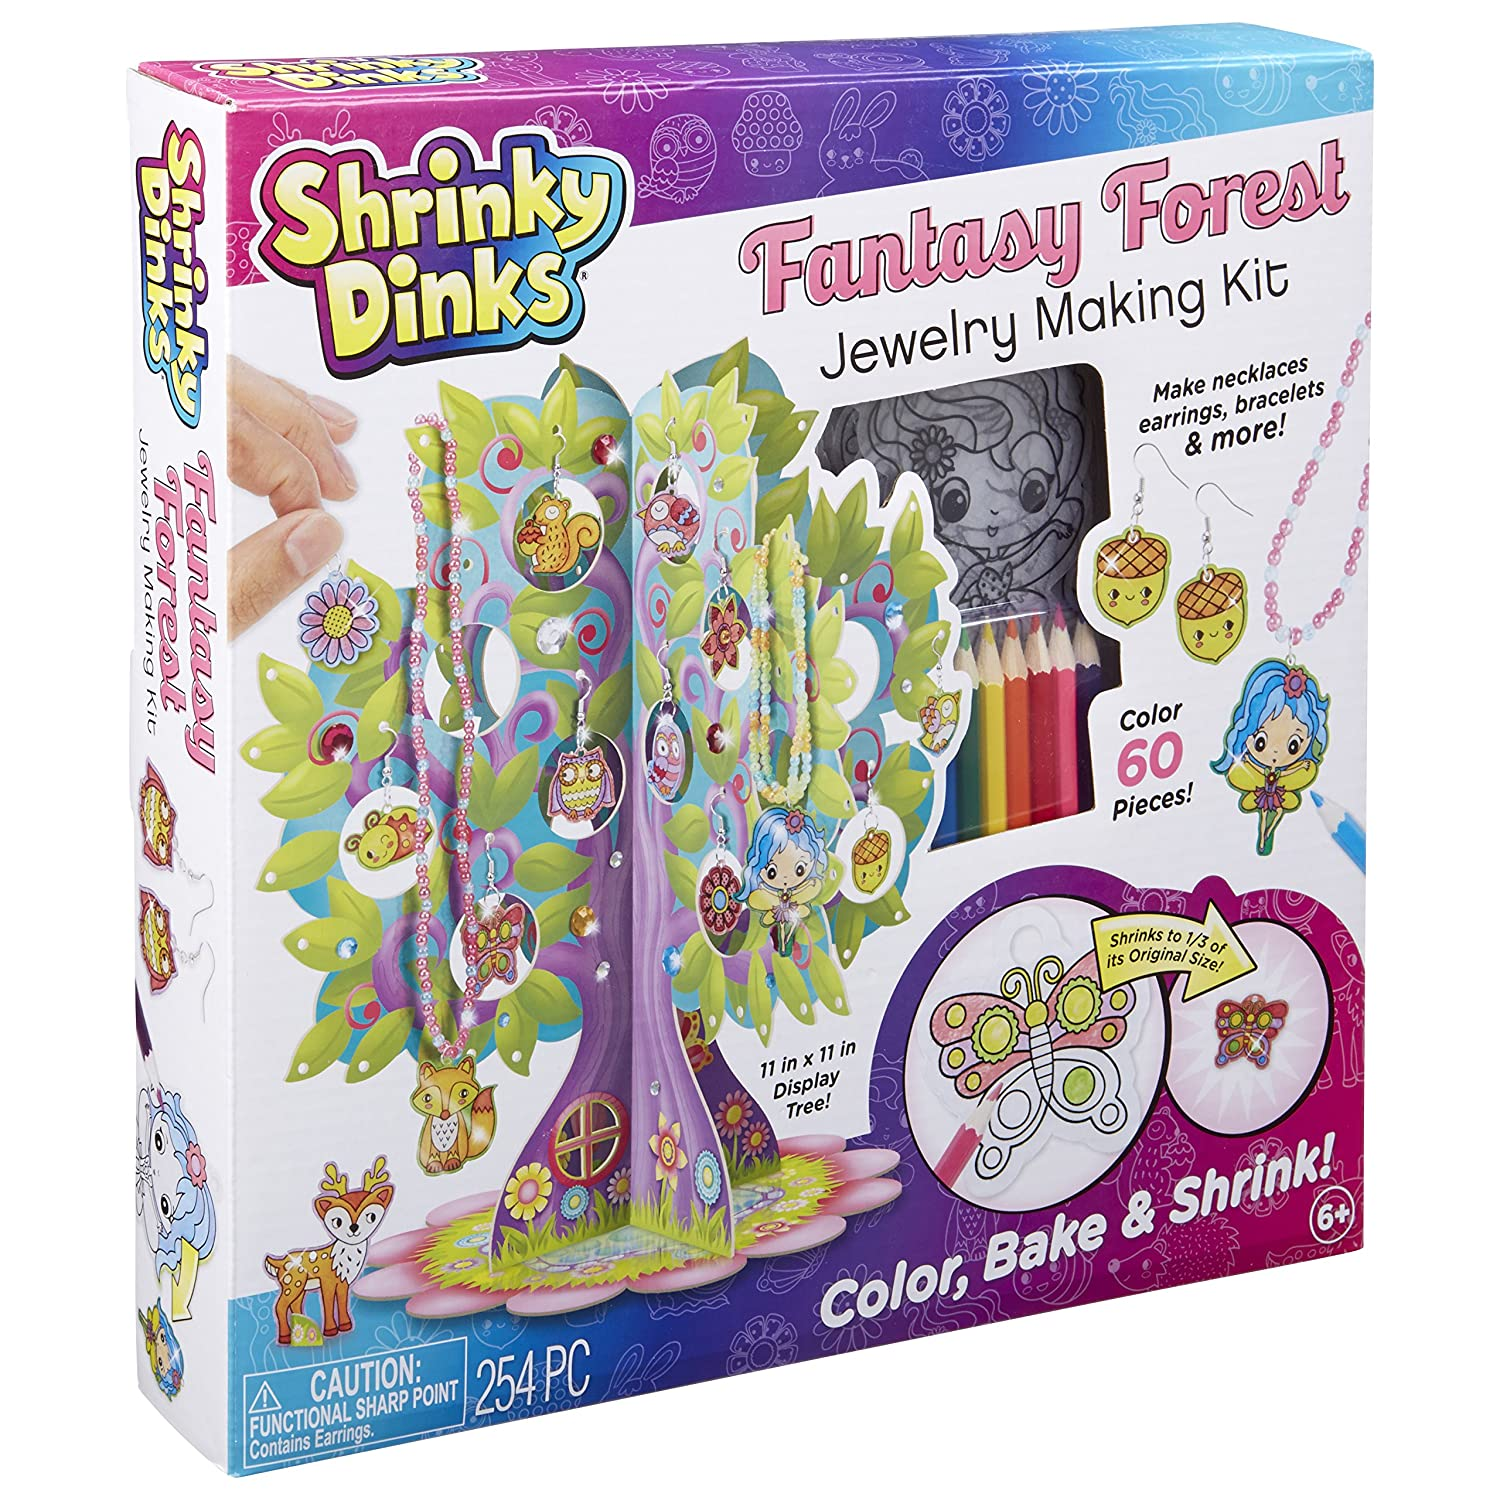 Fantasy Forest Jewelry Making Kit